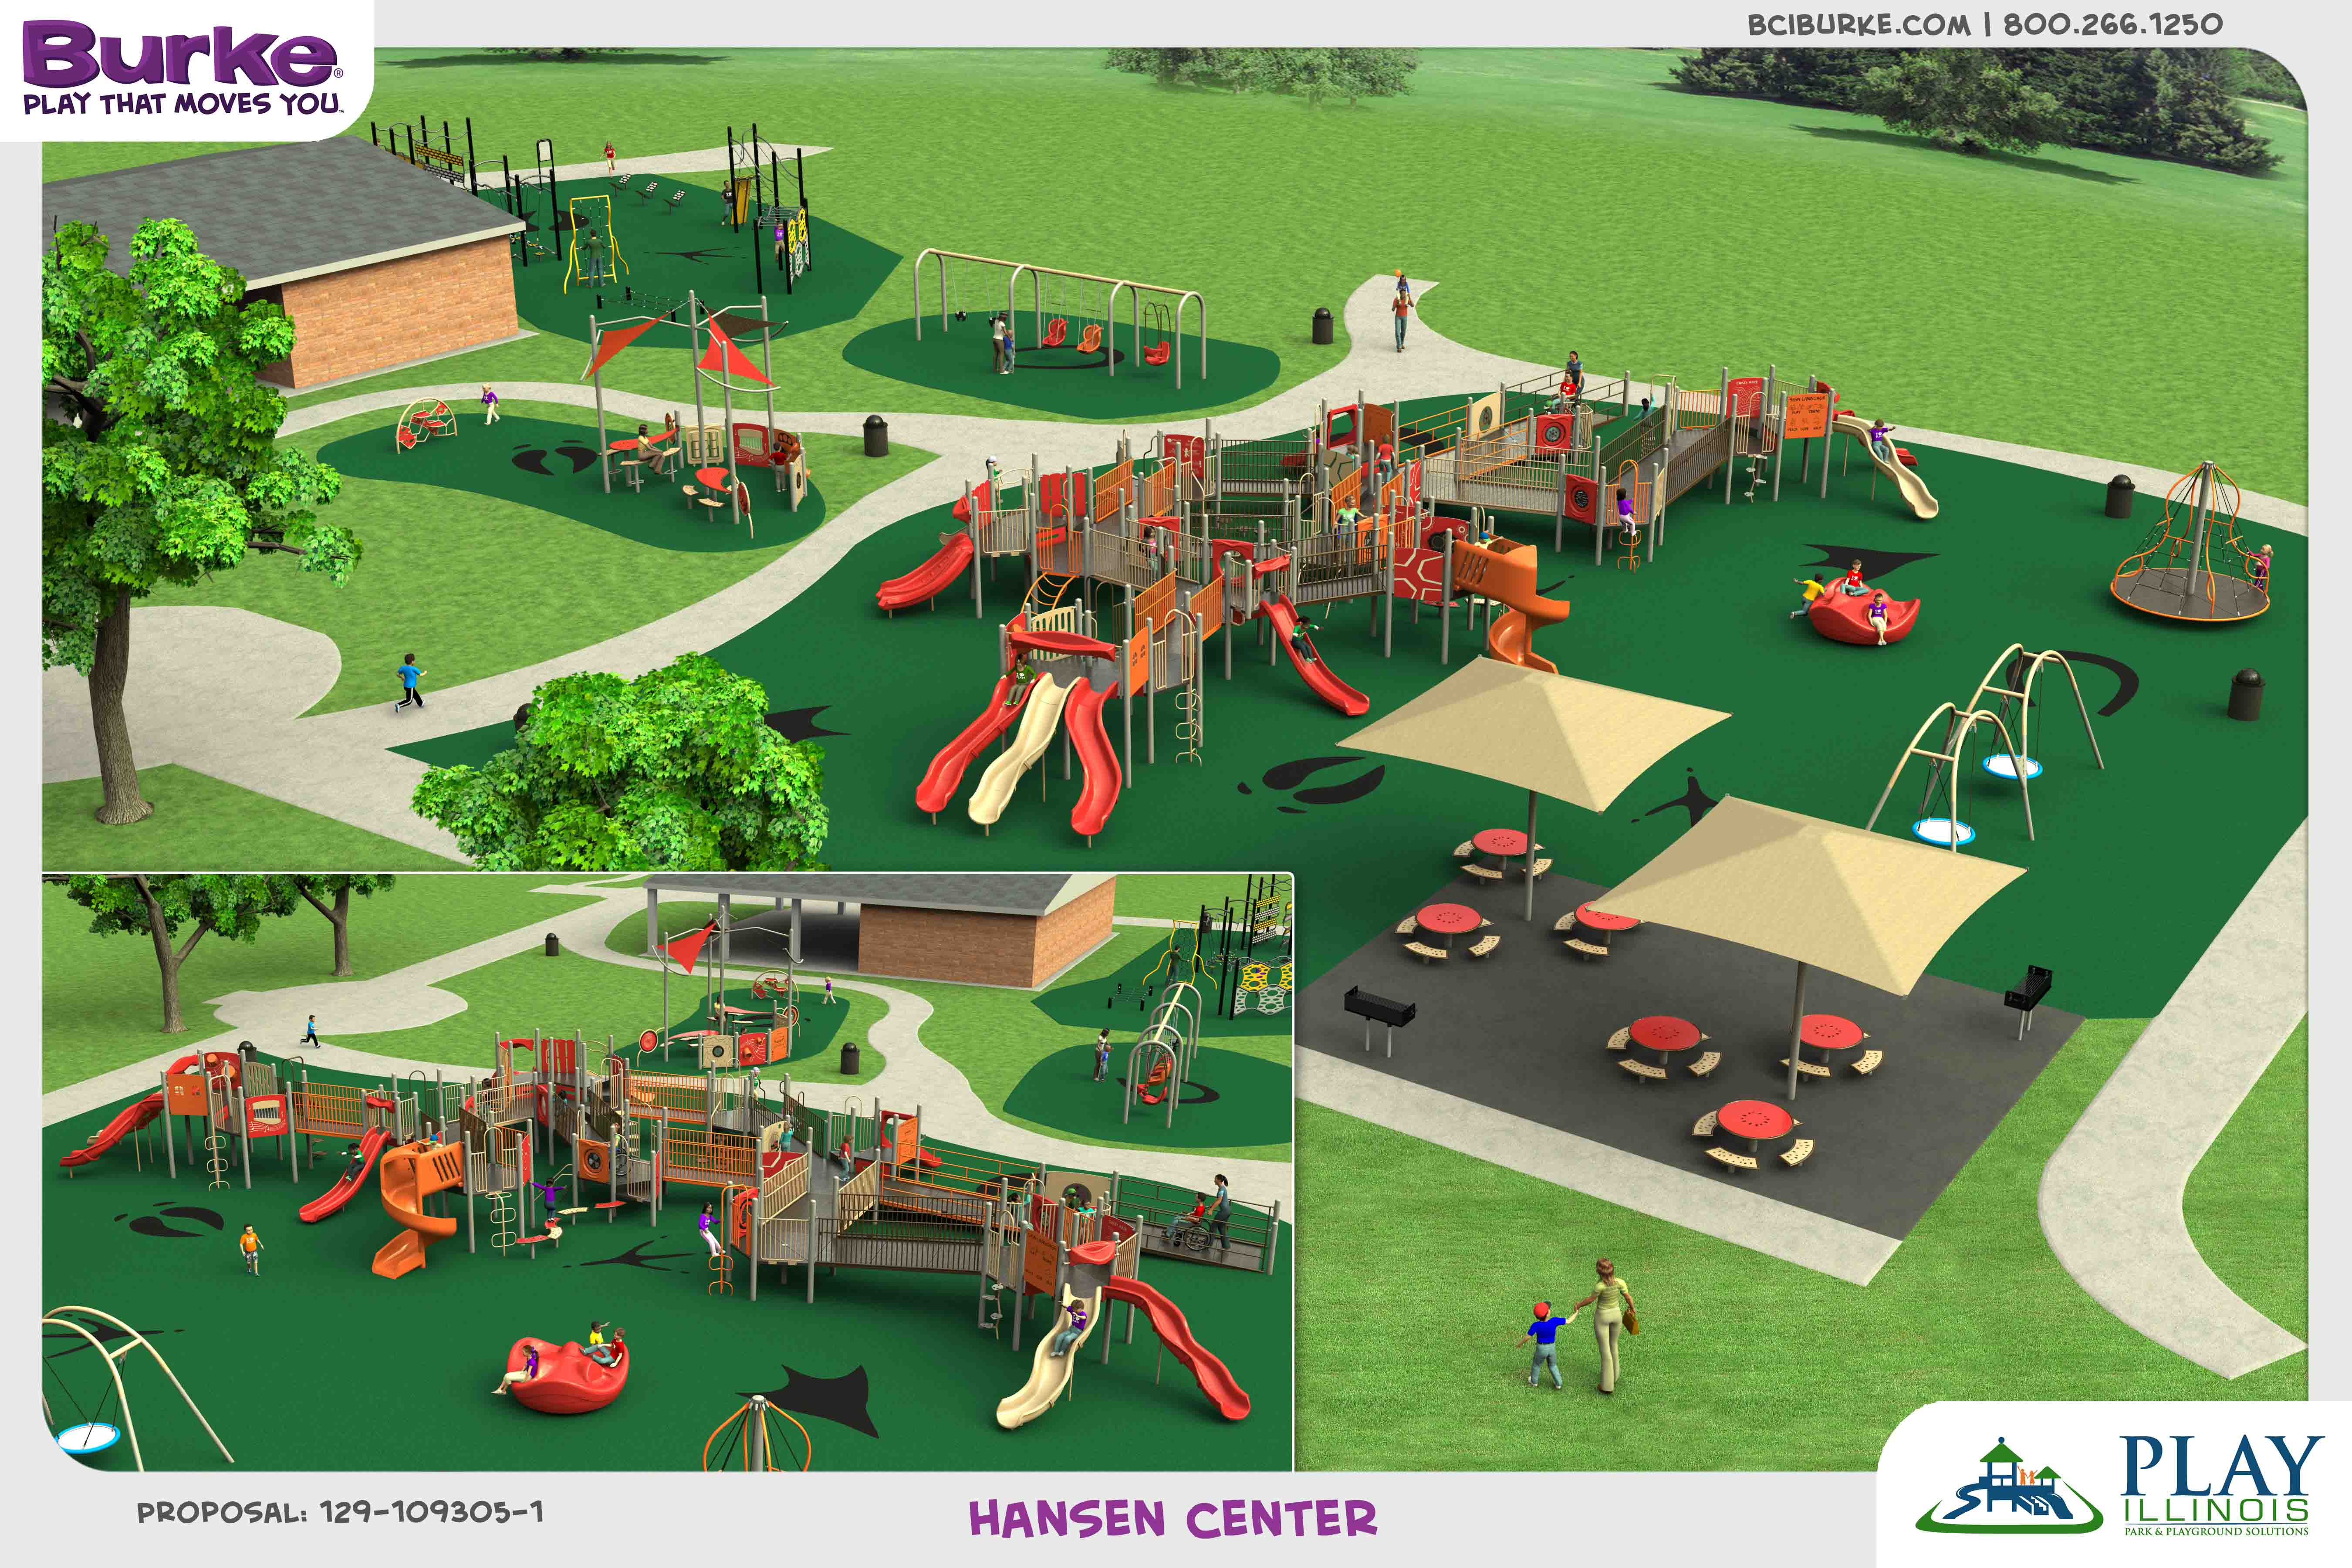 1291093051A_copy_MC_HansenCenter dream build play experience accessible playgrounds